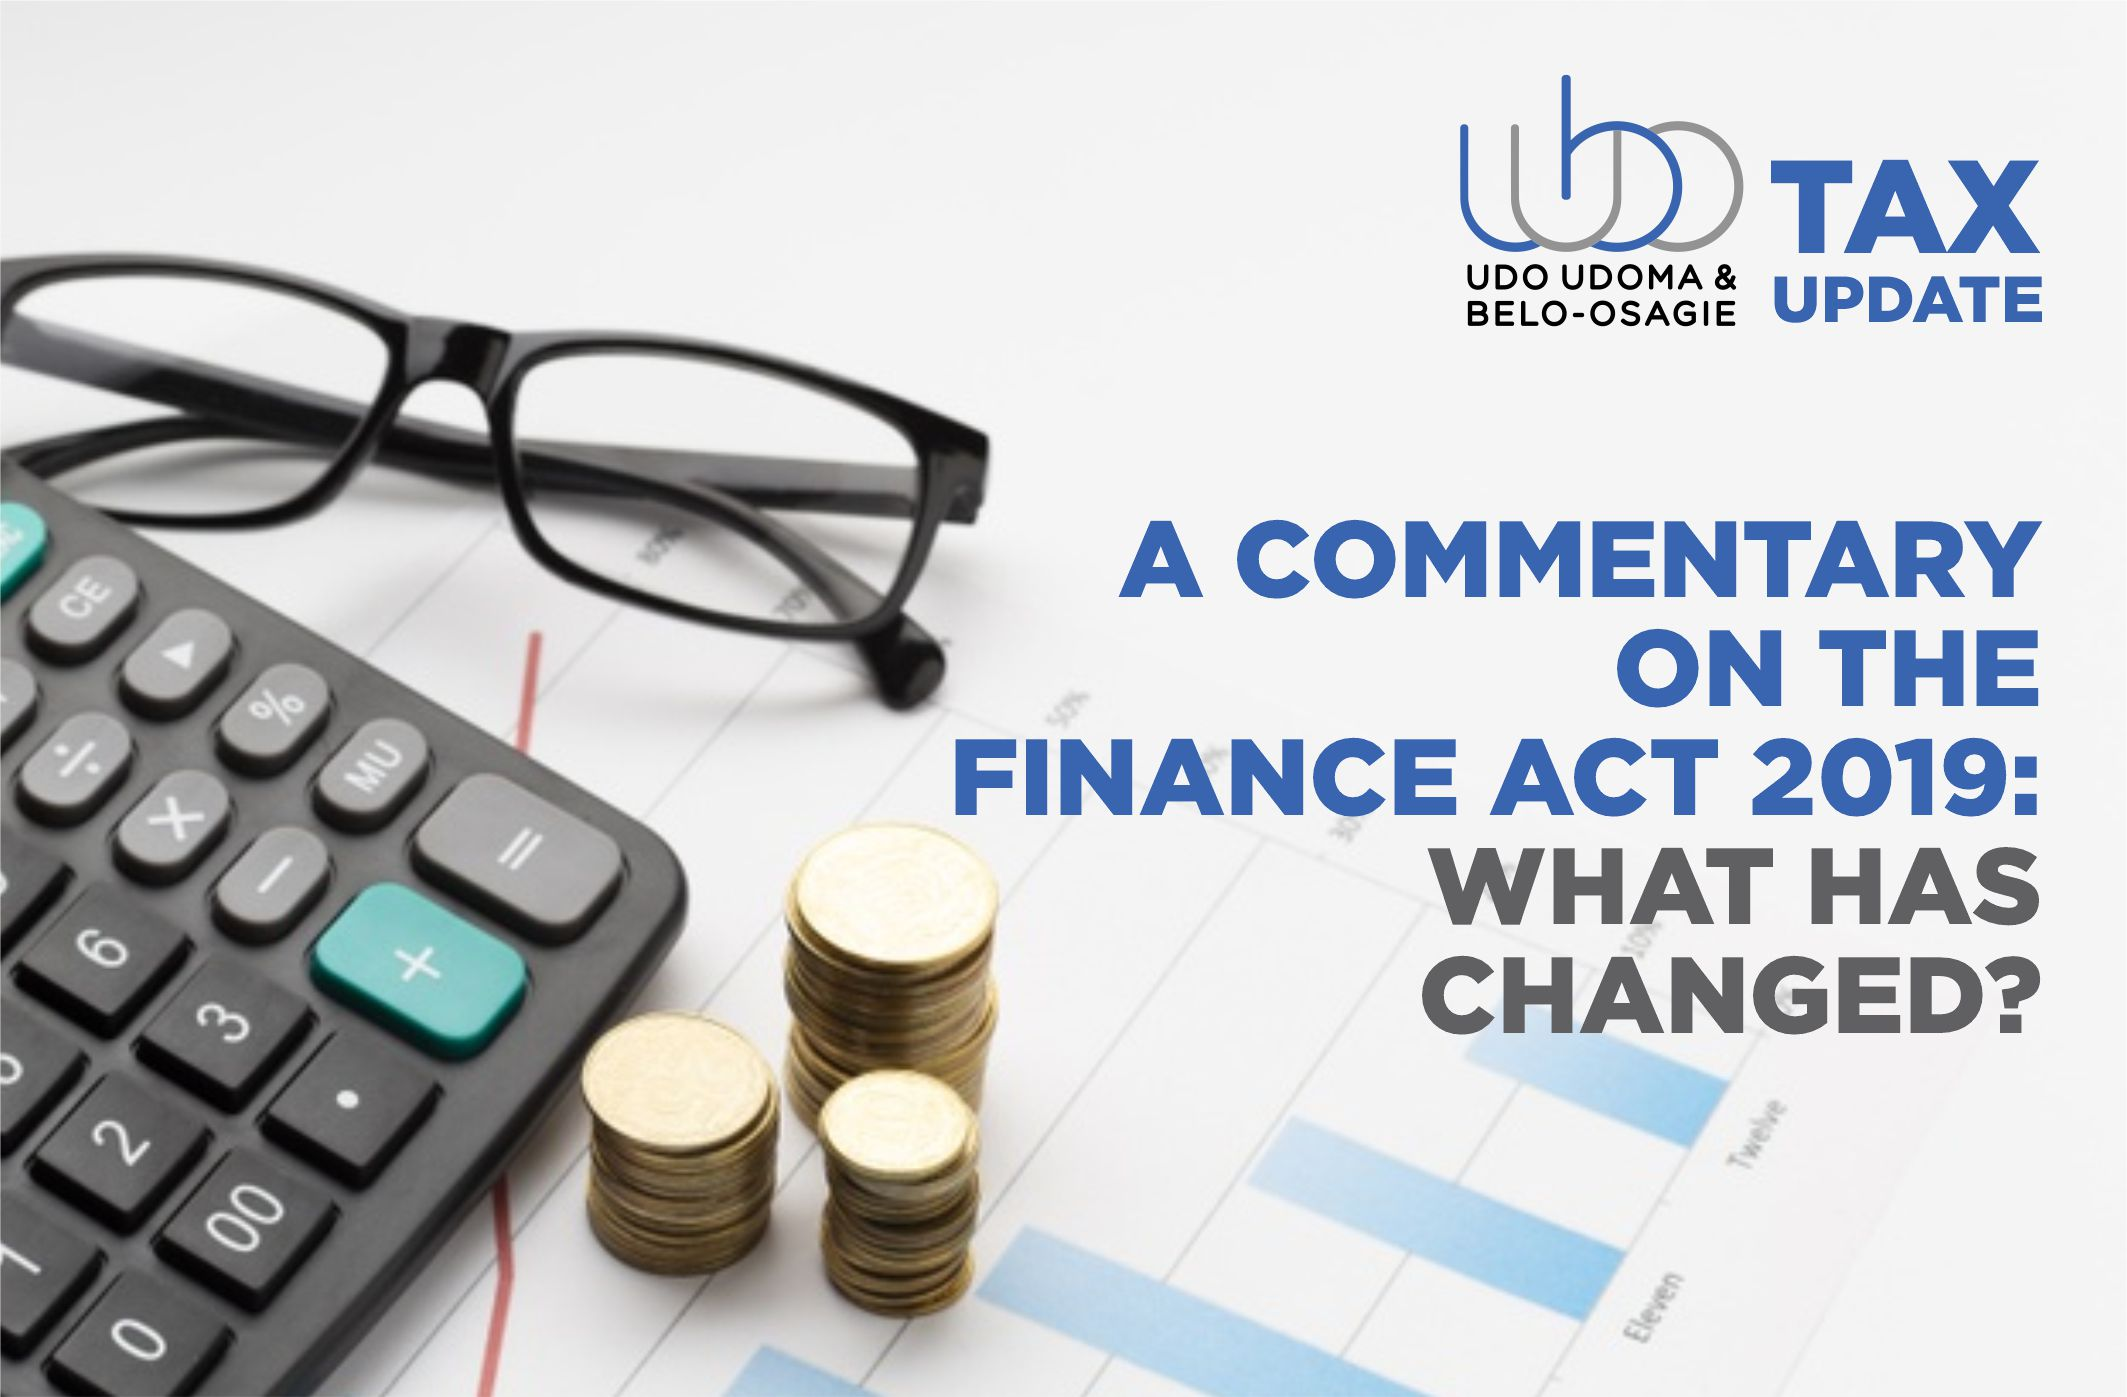 A COMMENTARY ON THE FINANCE ACT 2019: WHAT HAS CHANGED?